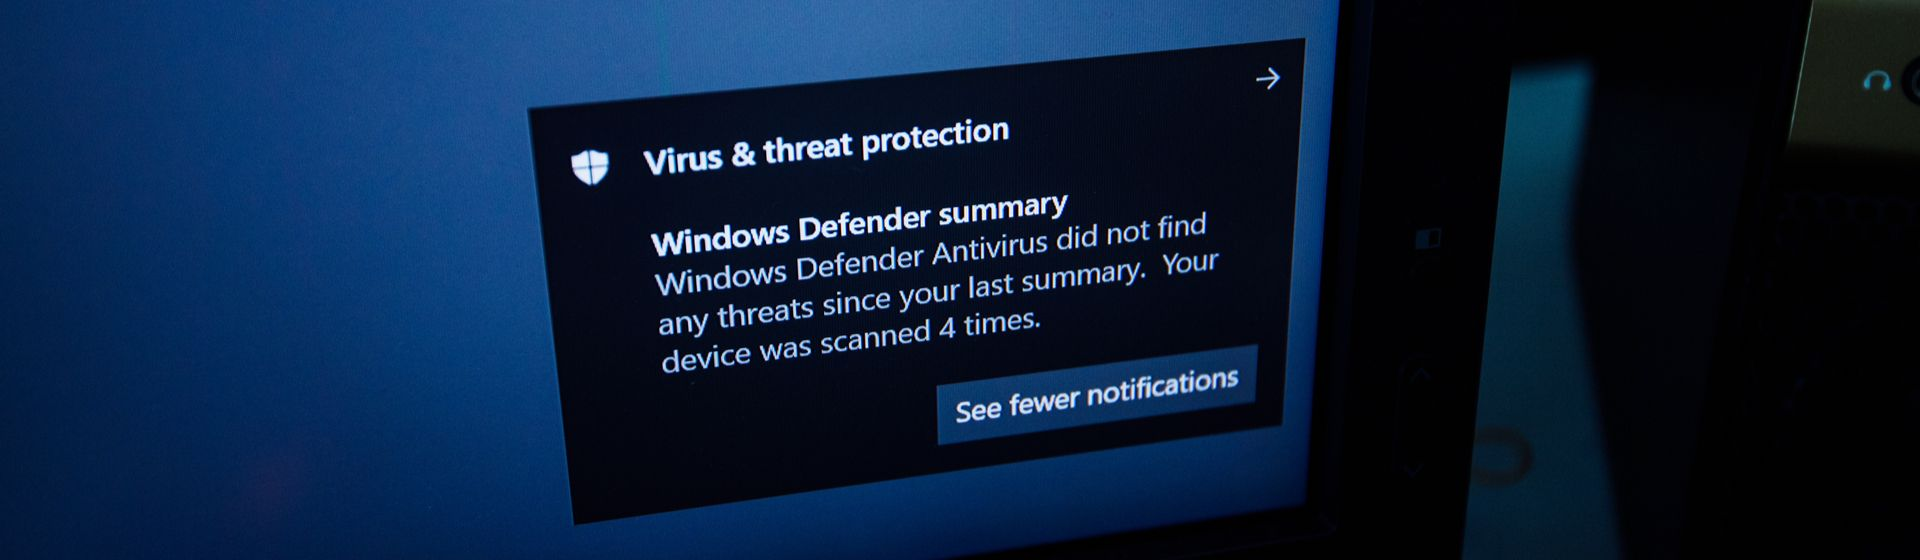 Como desativar o Windows Defender no seu PC ou notebook